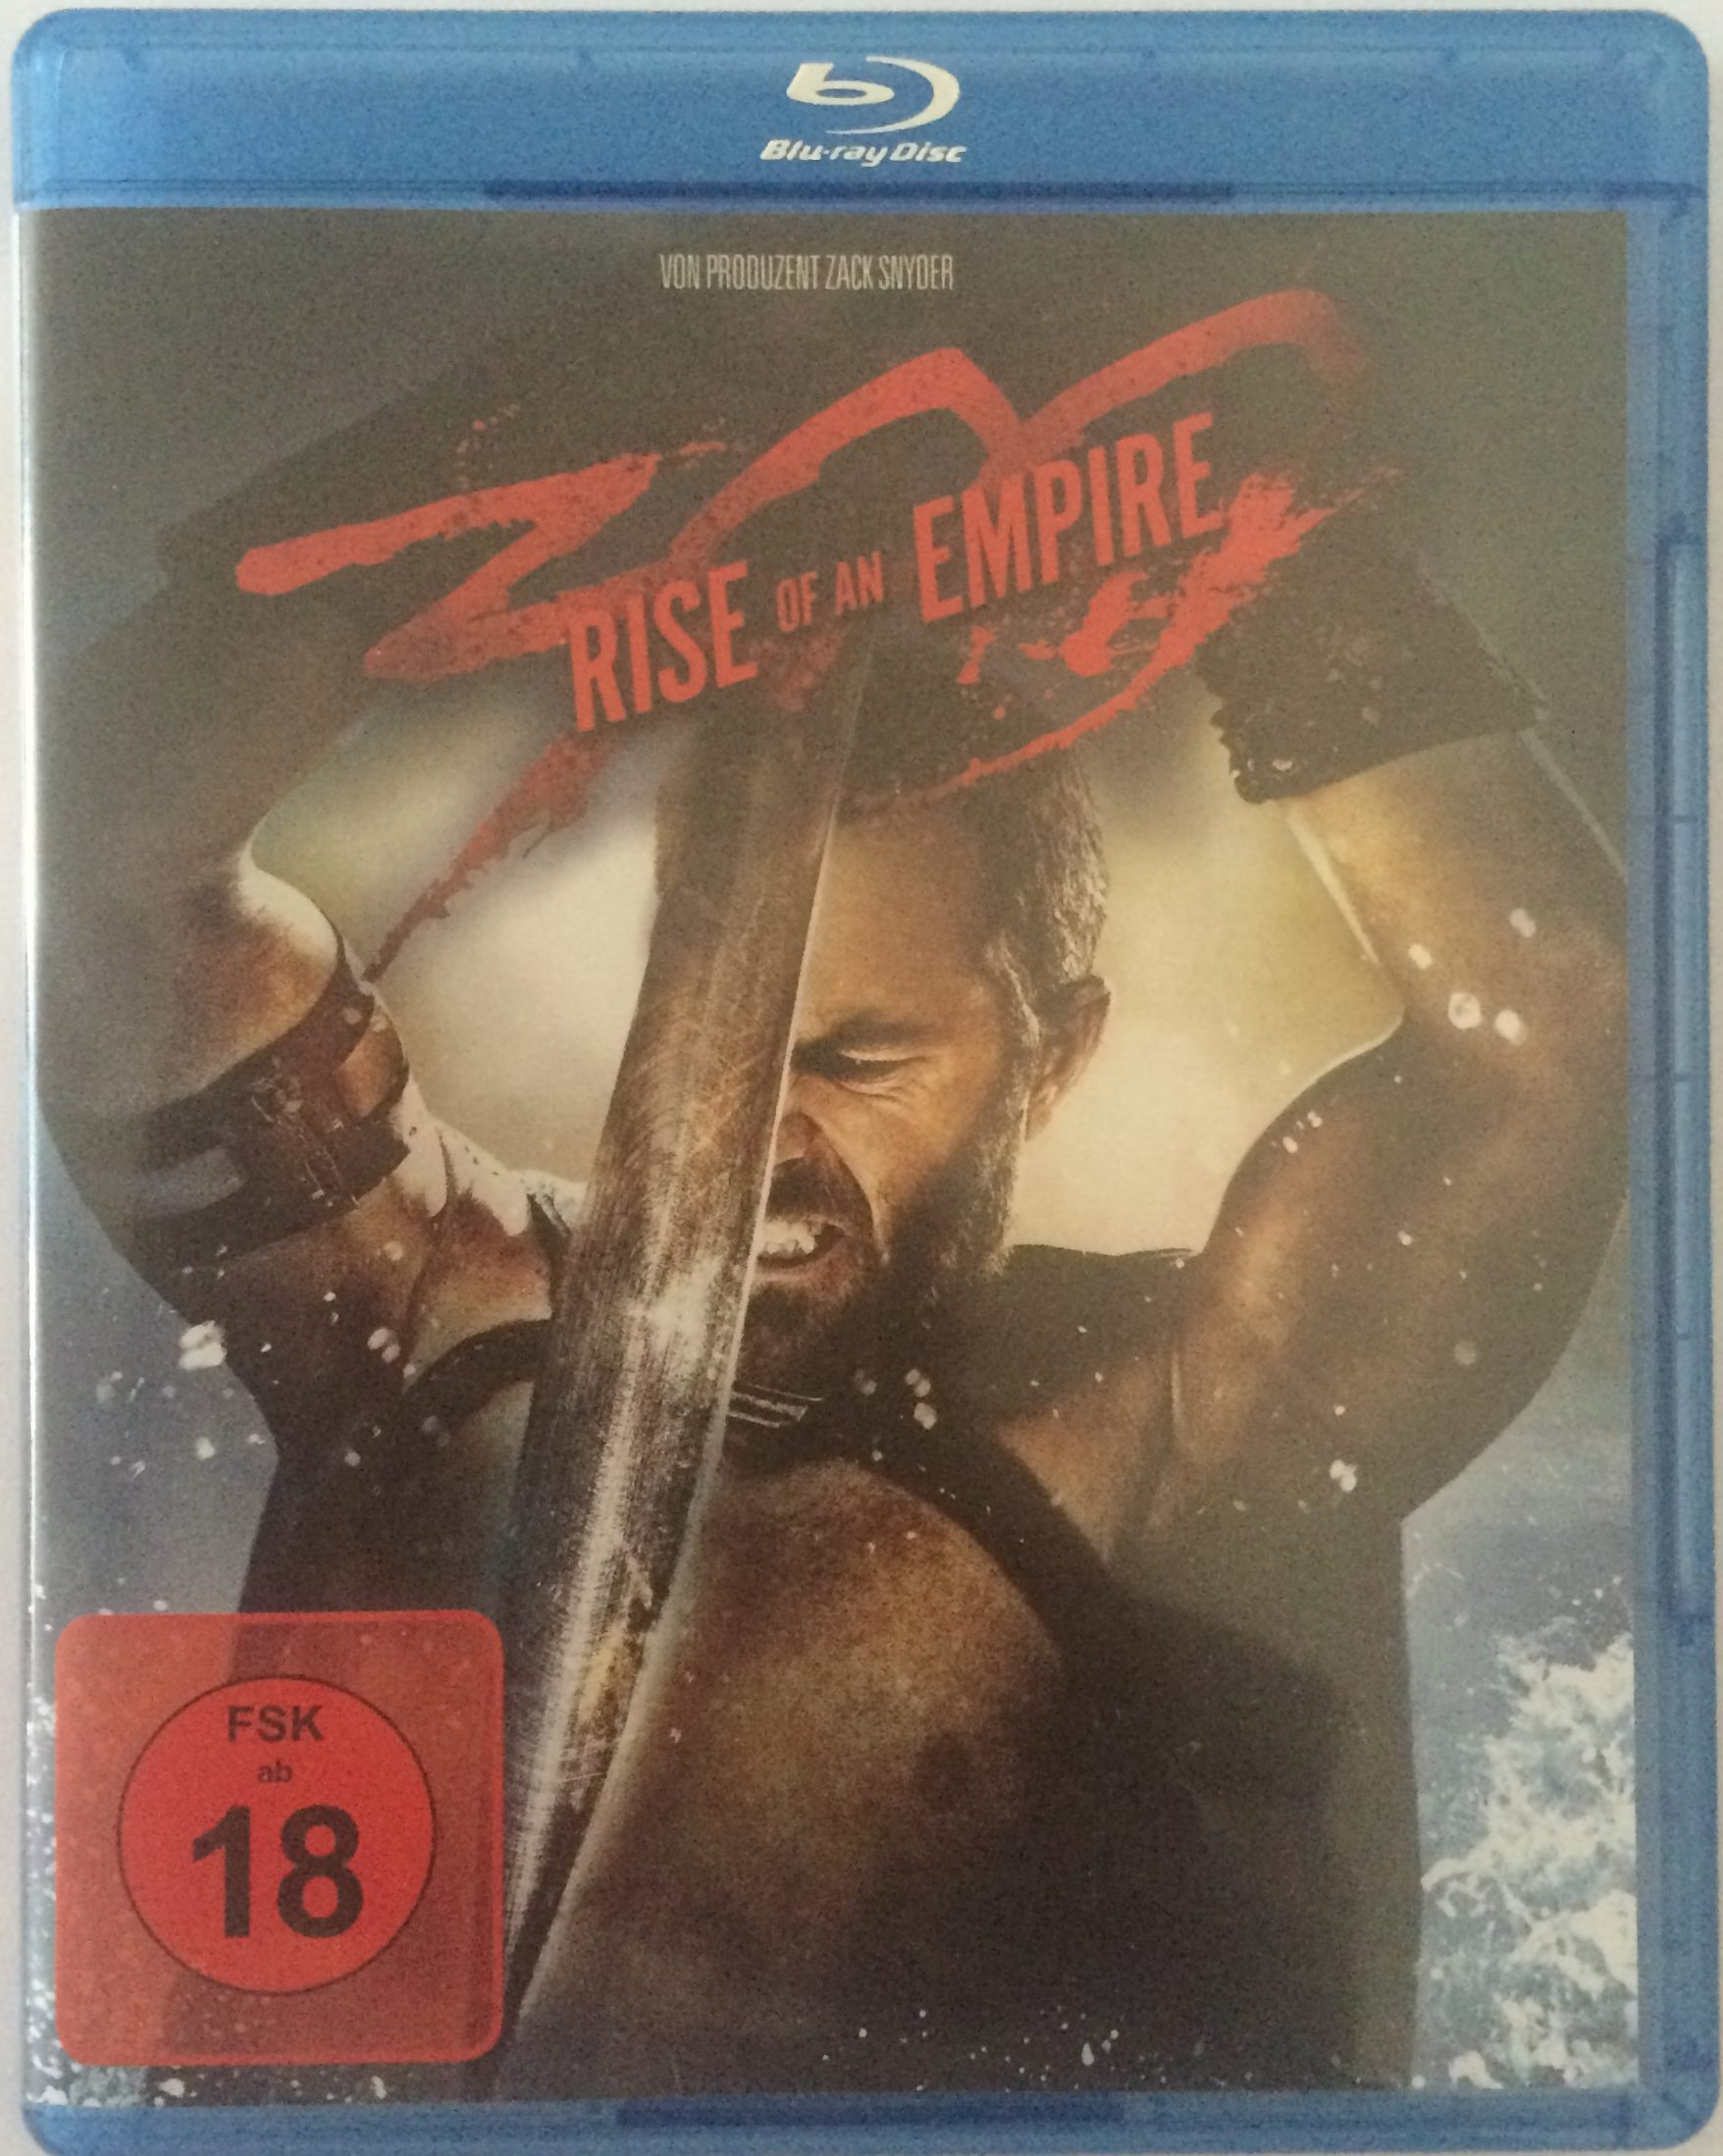 300 - Rise of an Empire Front